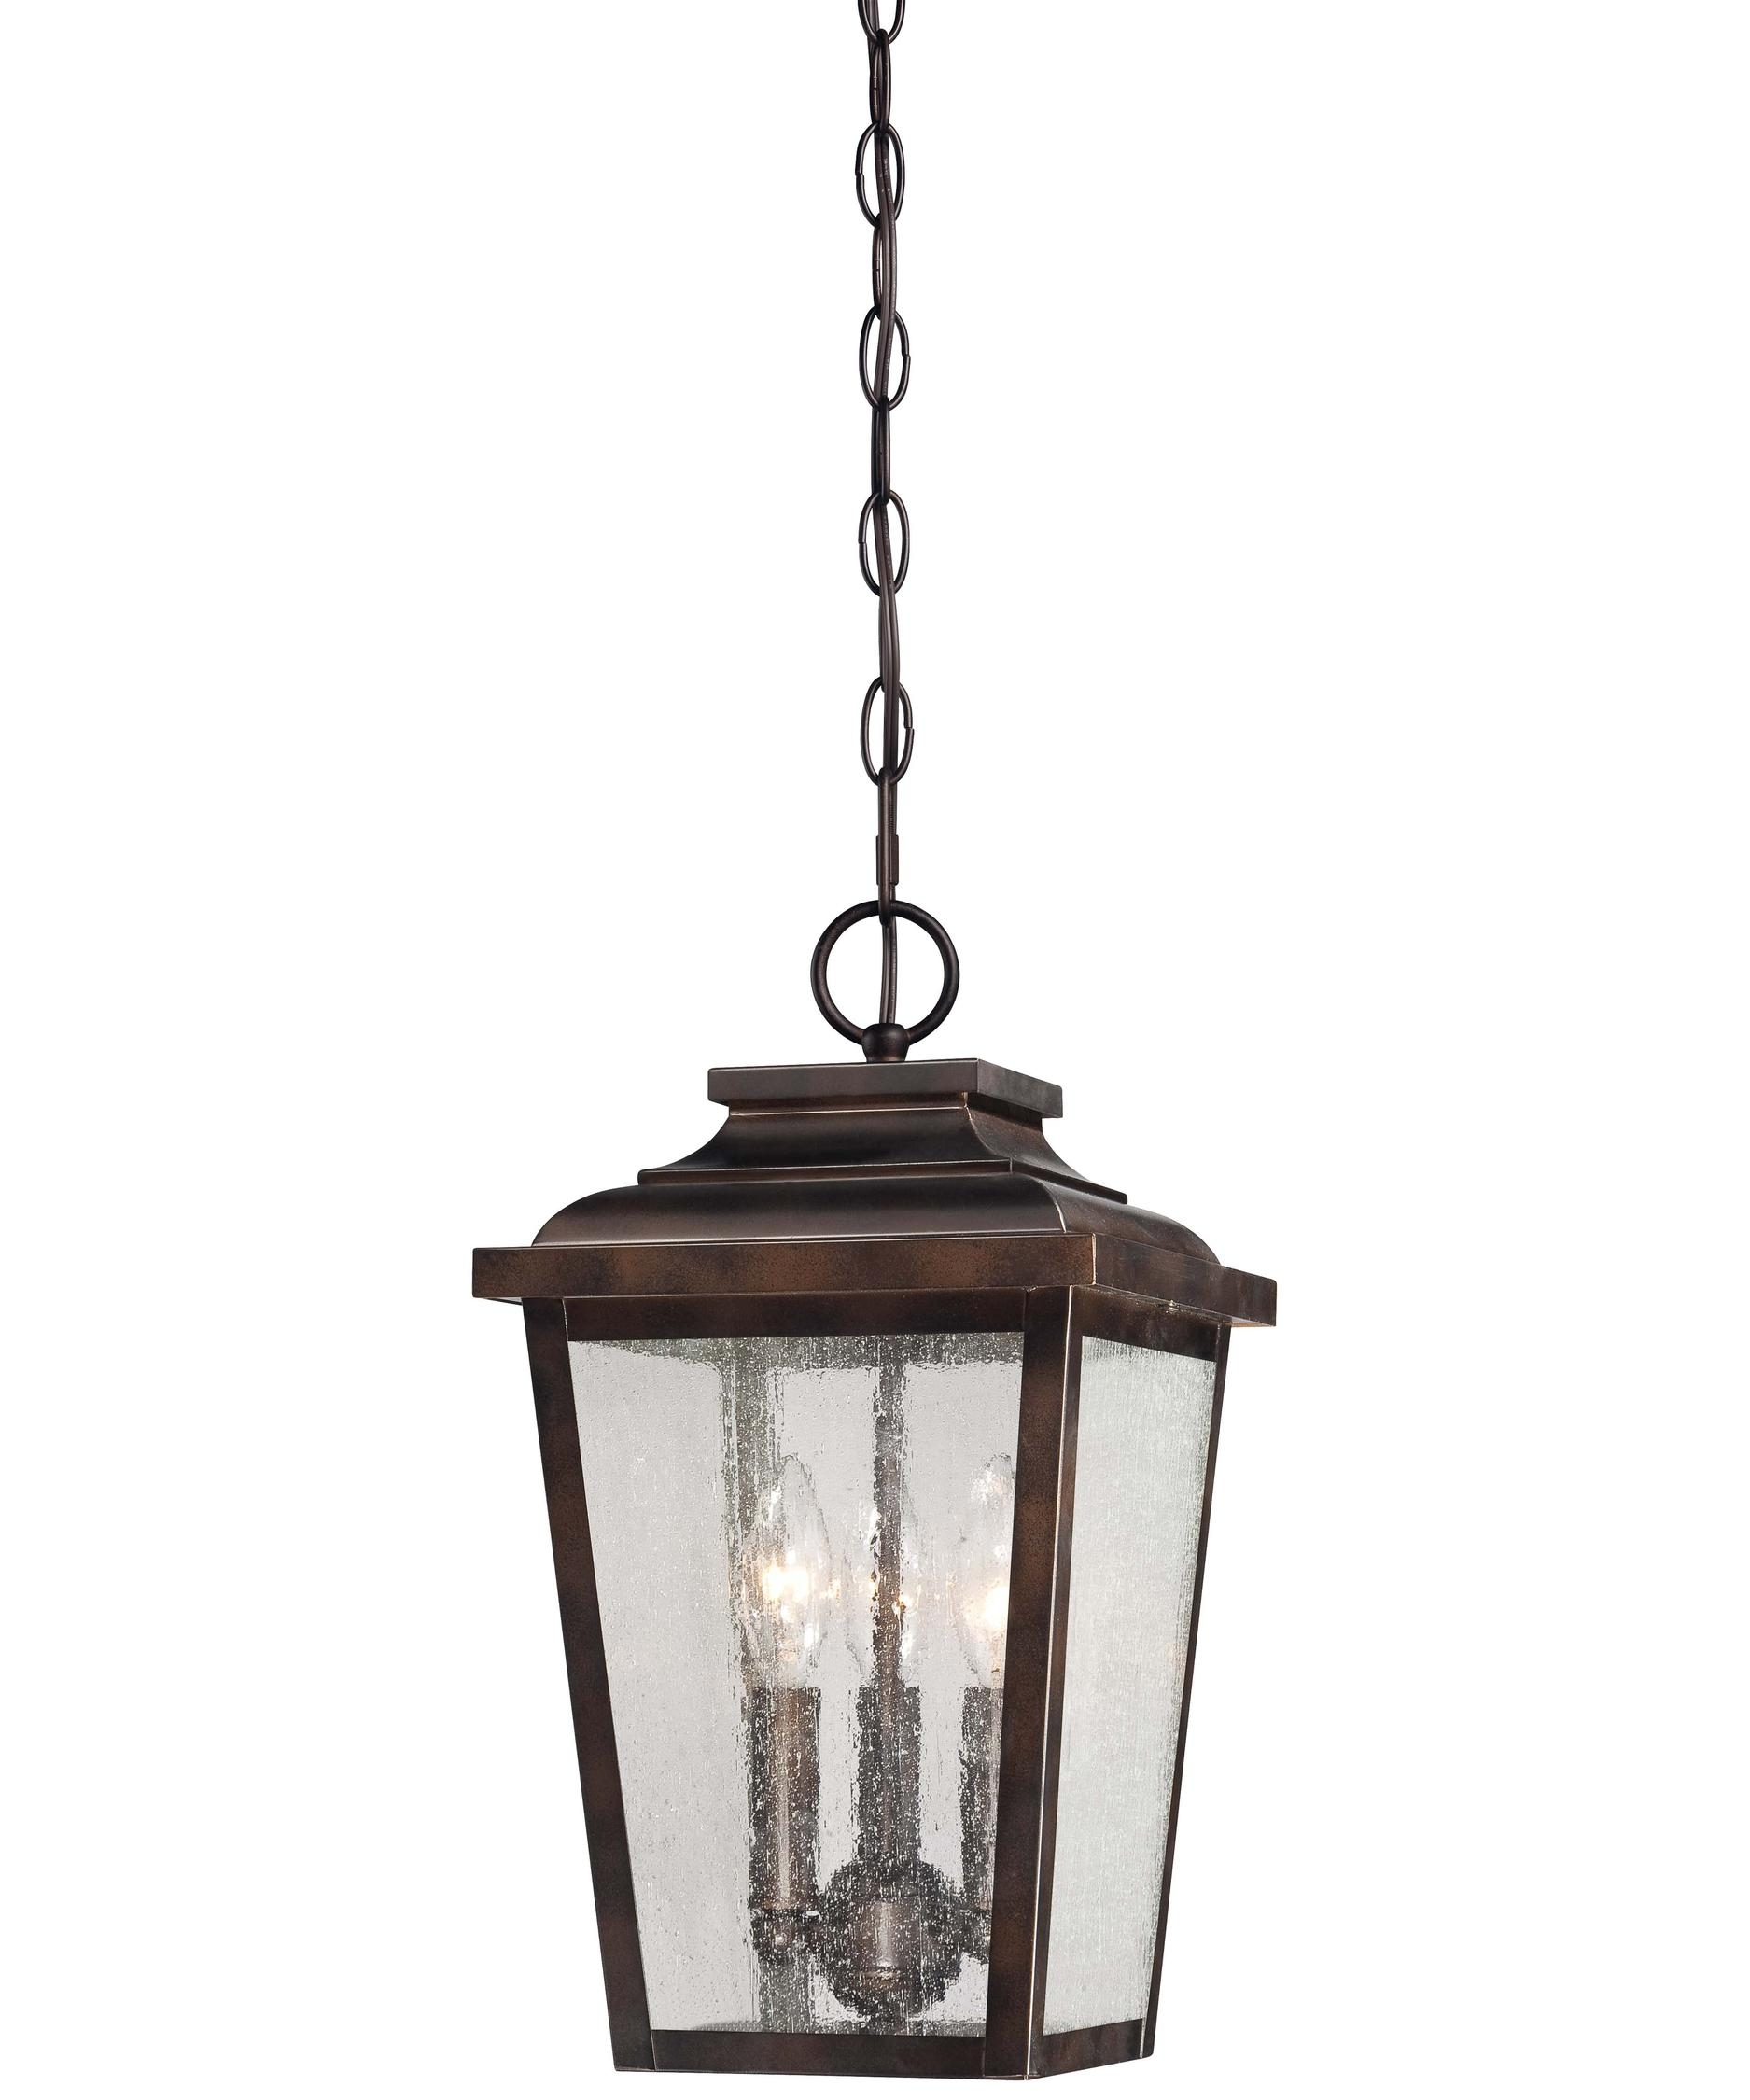 Inspiration about Pendant Lighting Ideas Top Outdoor Hanging Lights Over Also Metal Throughout Metal Outdoor Hanging Lights (#1 of 15)